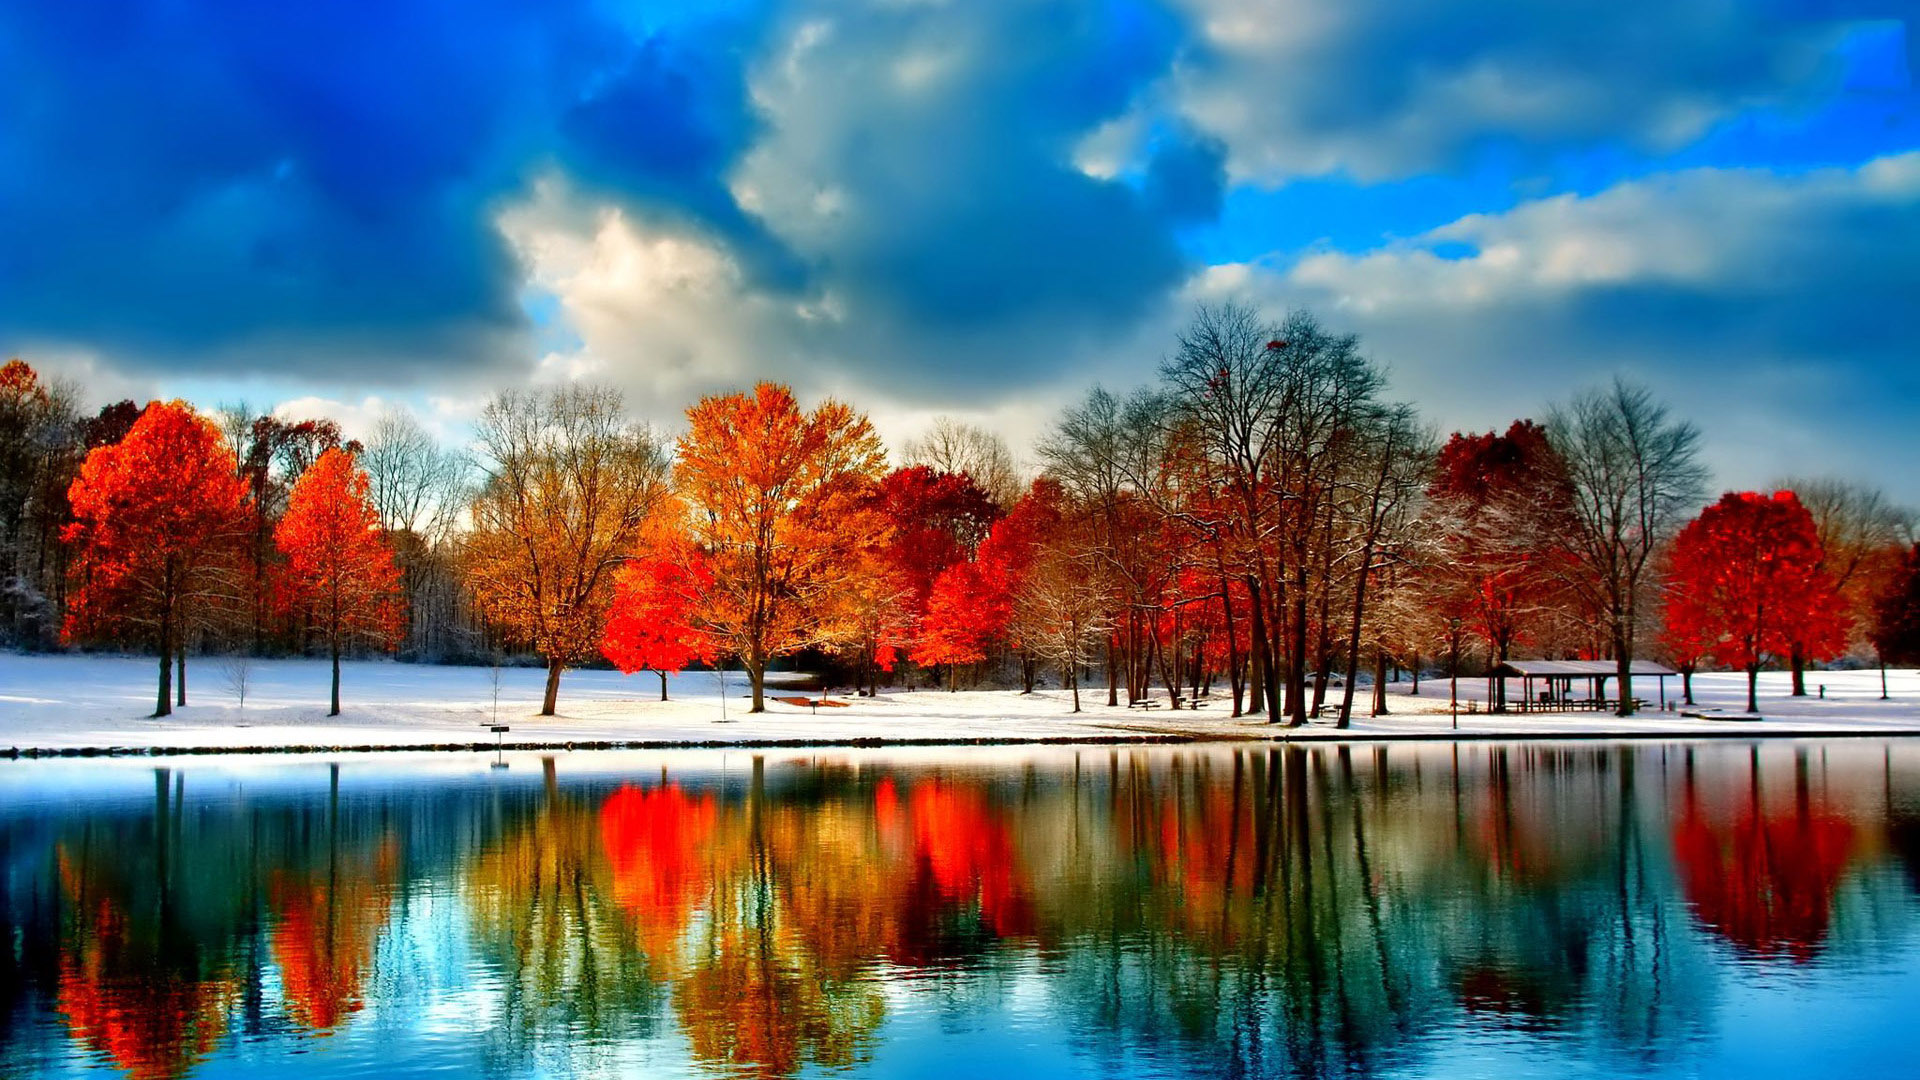 Late Fall Desktop Wallpaper Wonderful Autumn Trees Mirror In The Lake